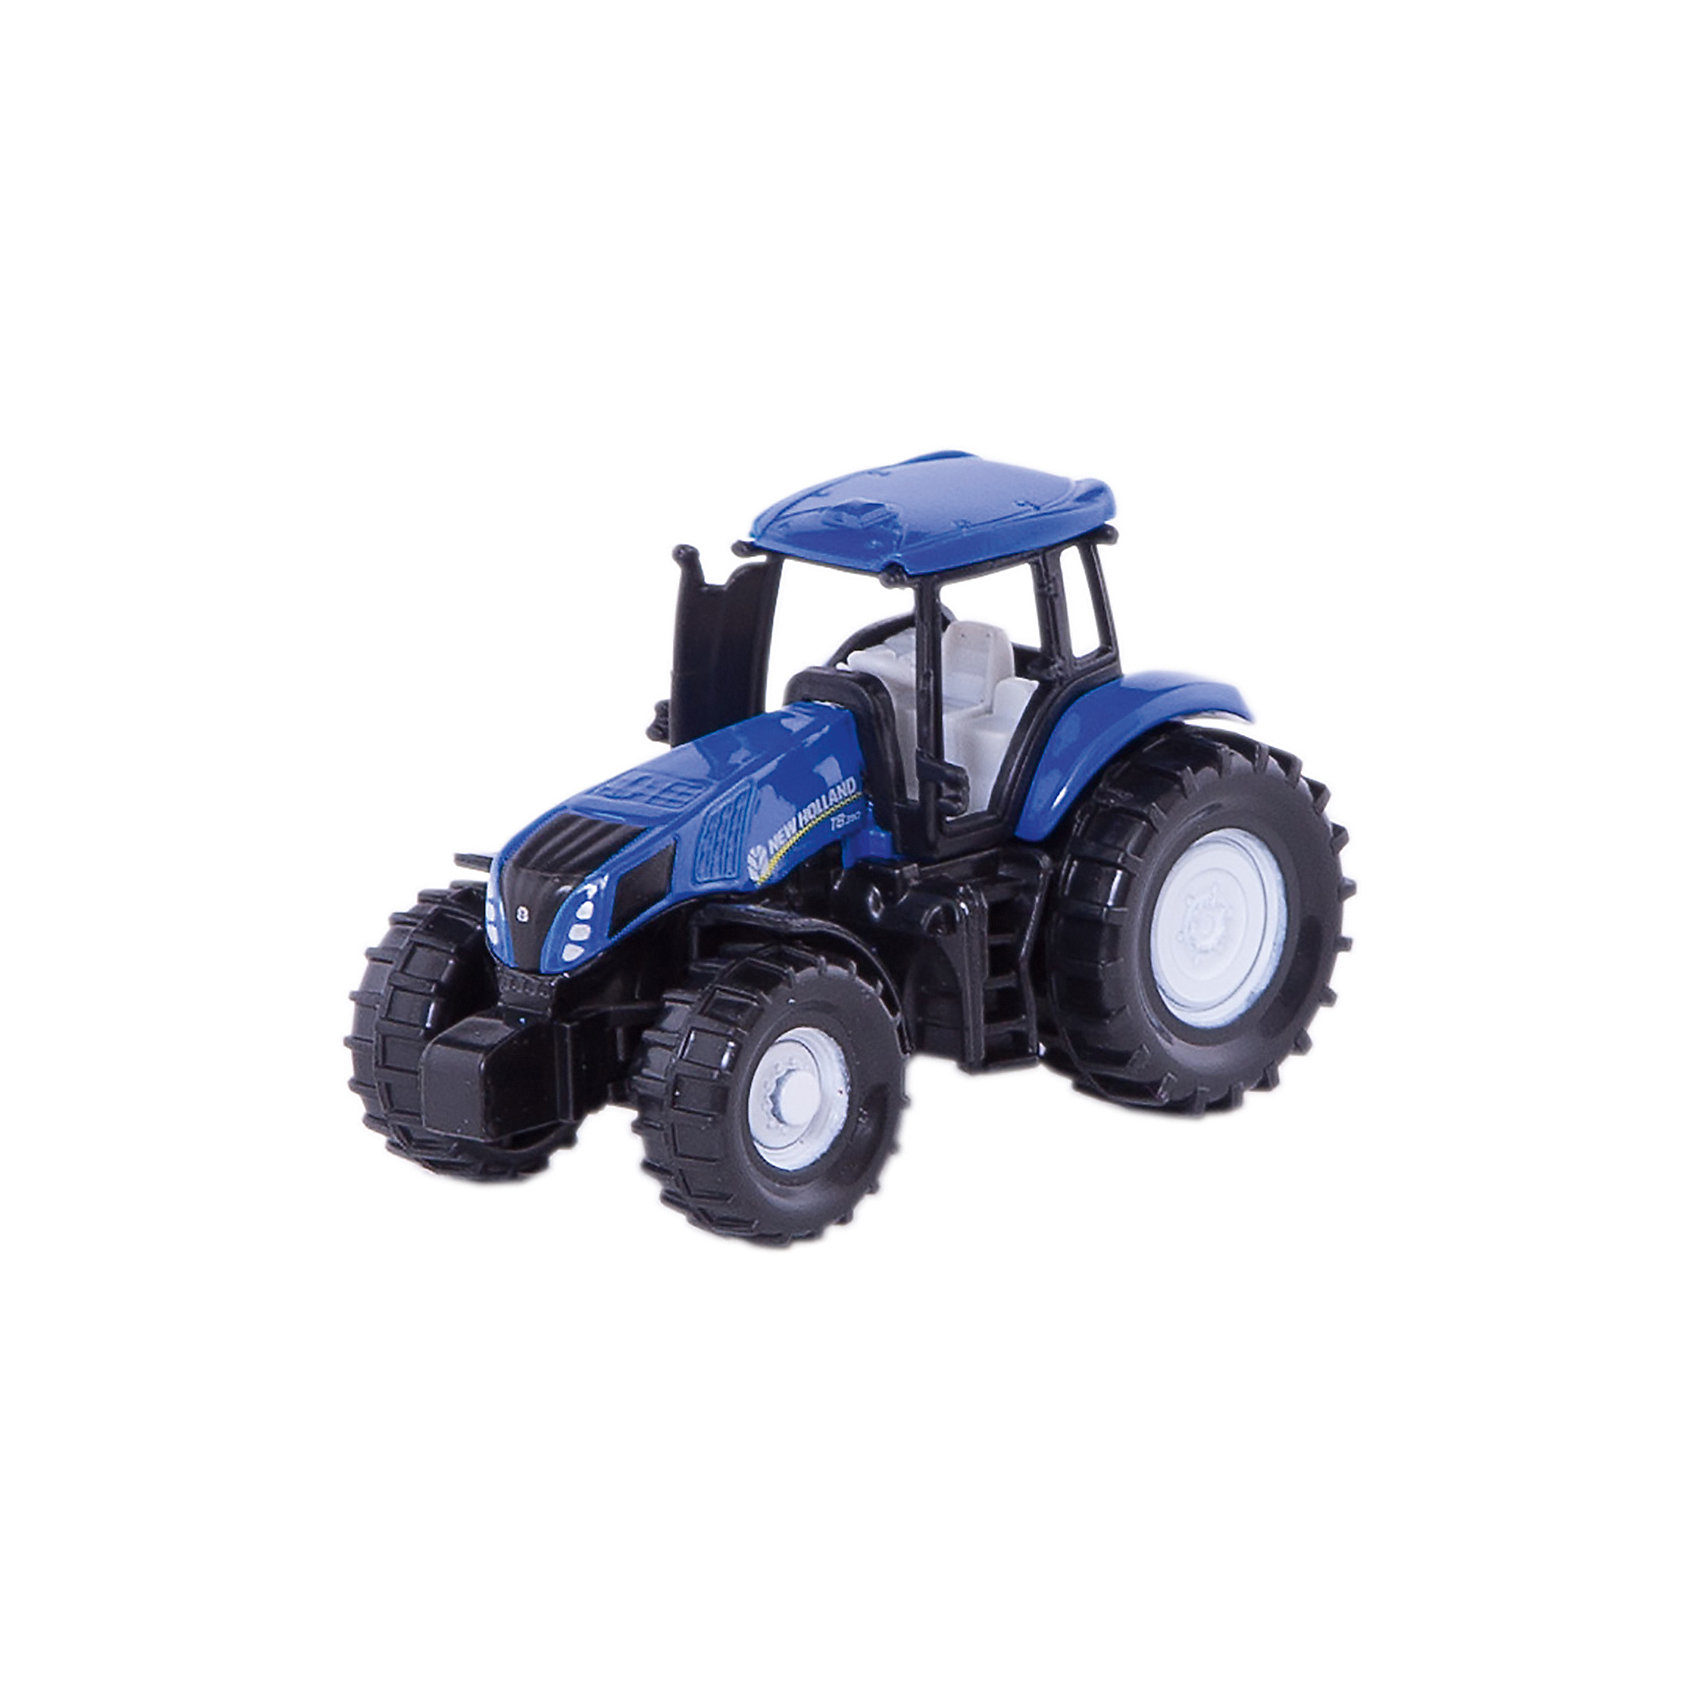 SIKU SIKU 1012 Трактор New Holland T8.390 siku трактор new holland синий 1 72 siku